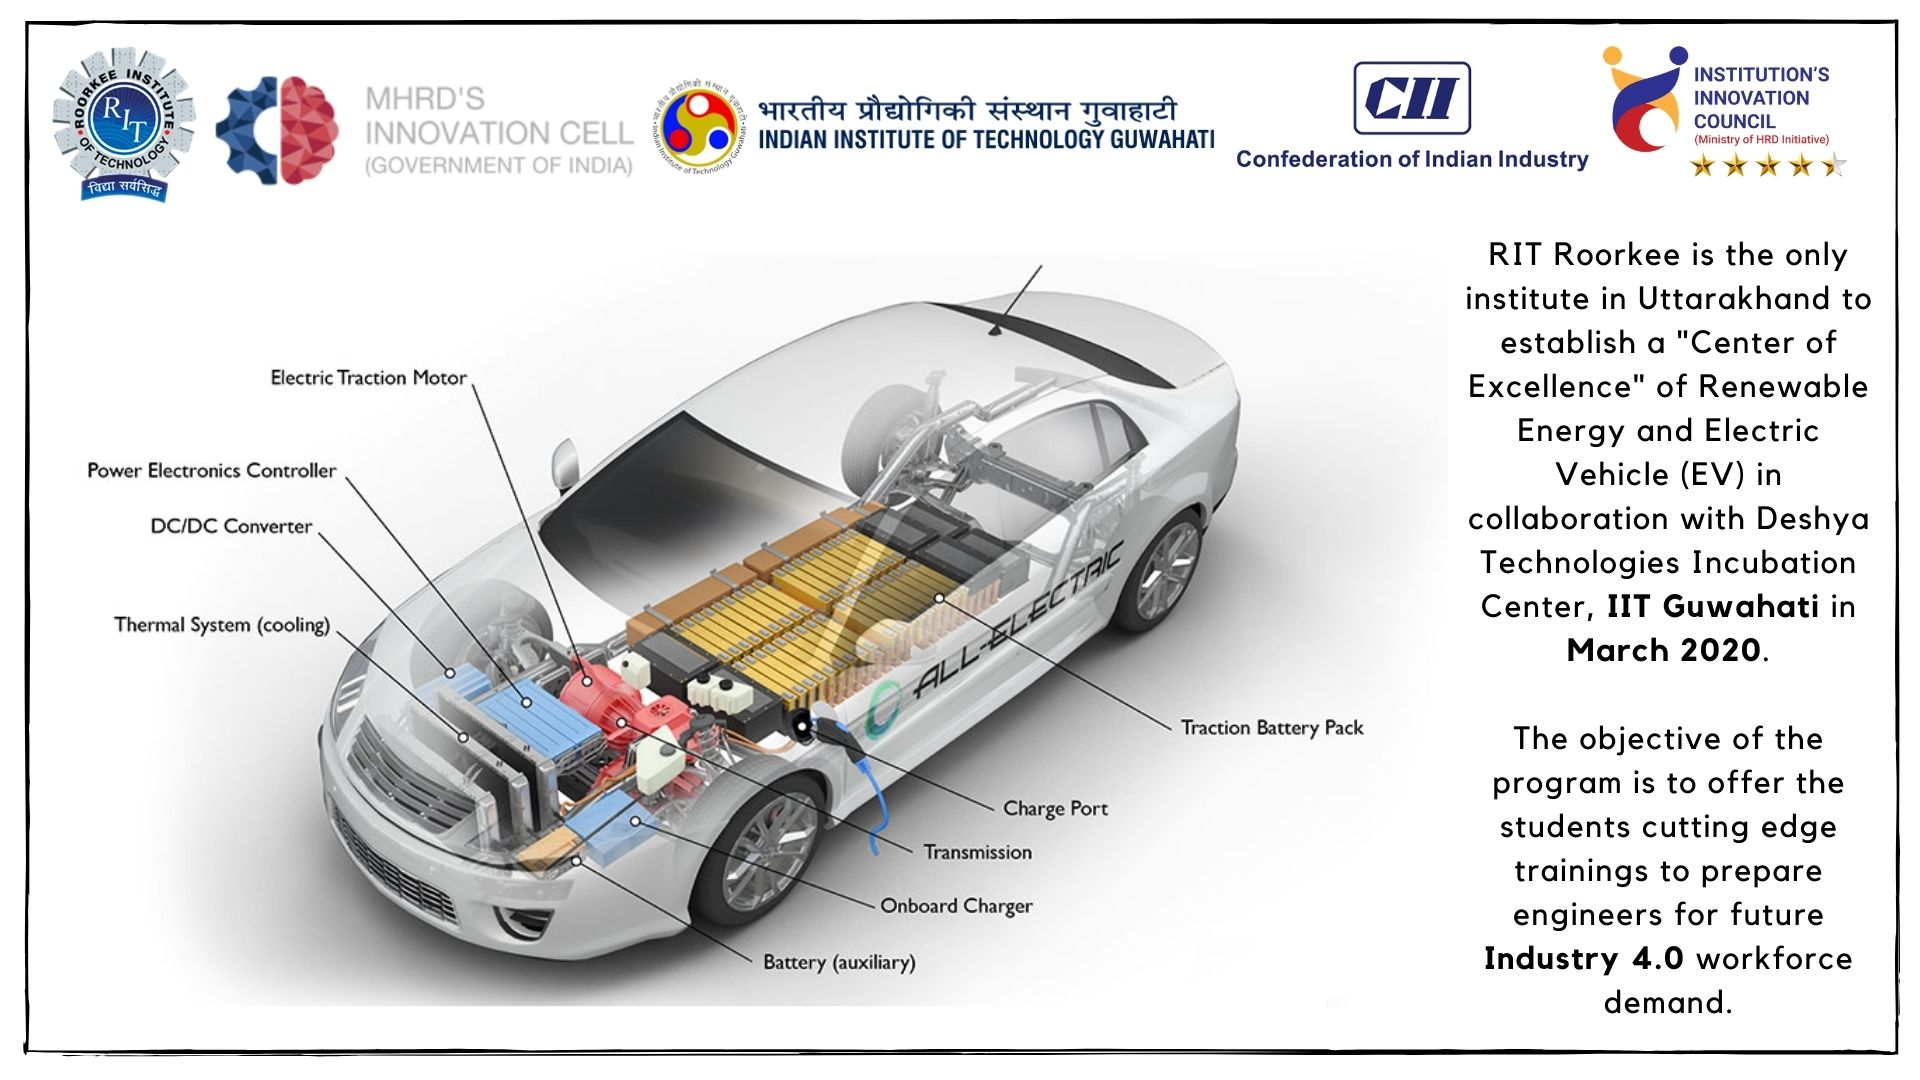 RIT is Centre of Excellence - E-Mobility and Renewable Energy